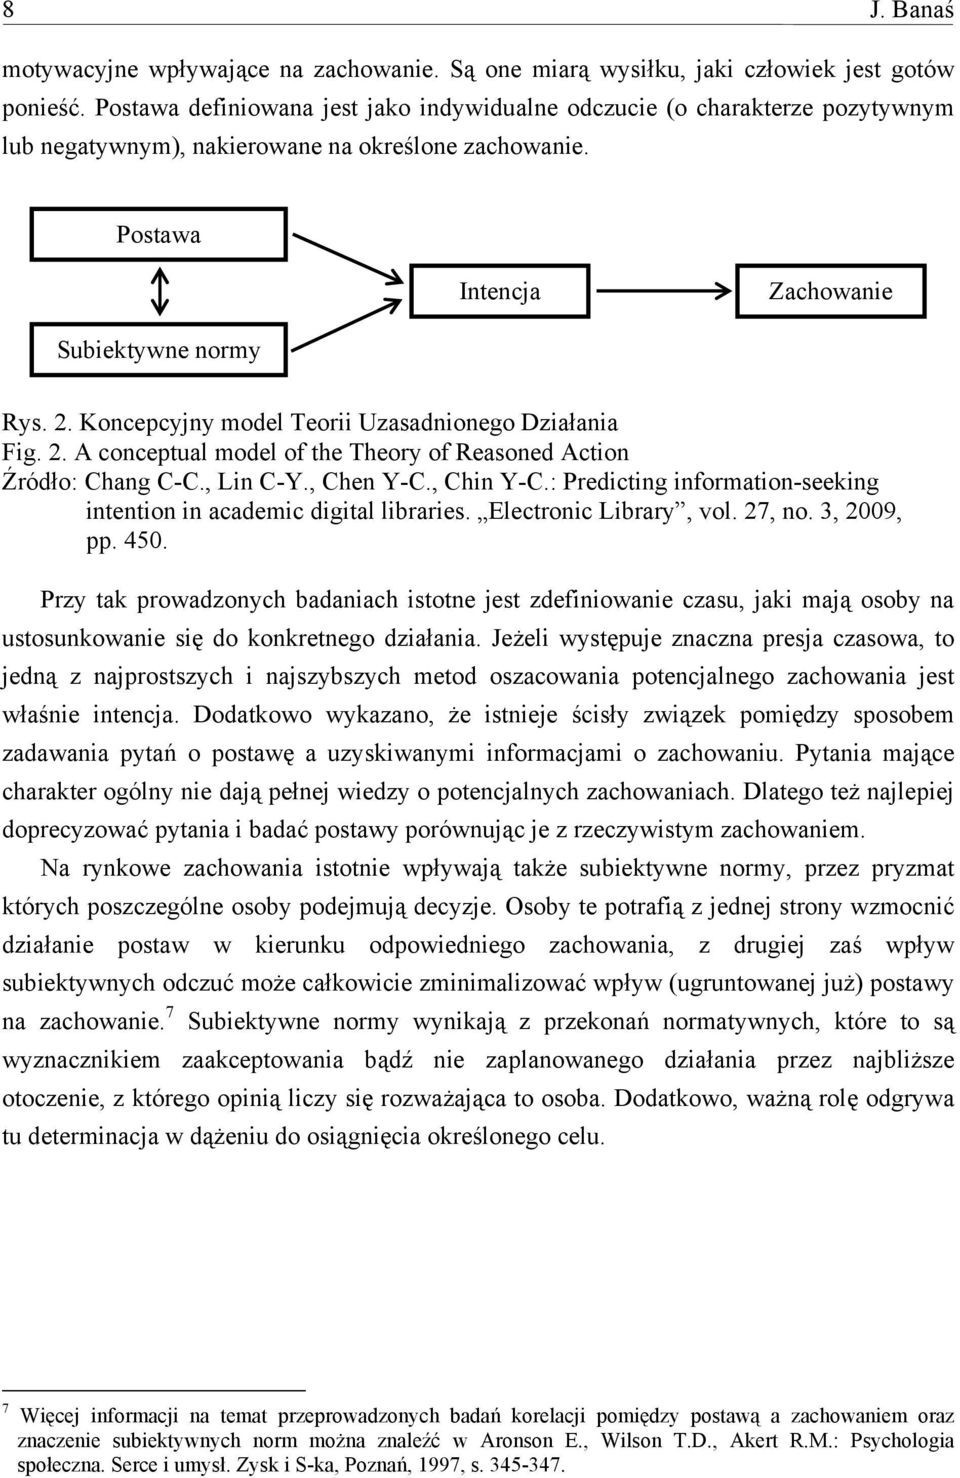 Koncepcyjny model Teorii Uzasadnionego Działania Fig. 2. A conceptual model of the Theory of Reasoned Action Źródło: Chang C-C., Lin C-Y., Chen Y-C., Chin Y-C.